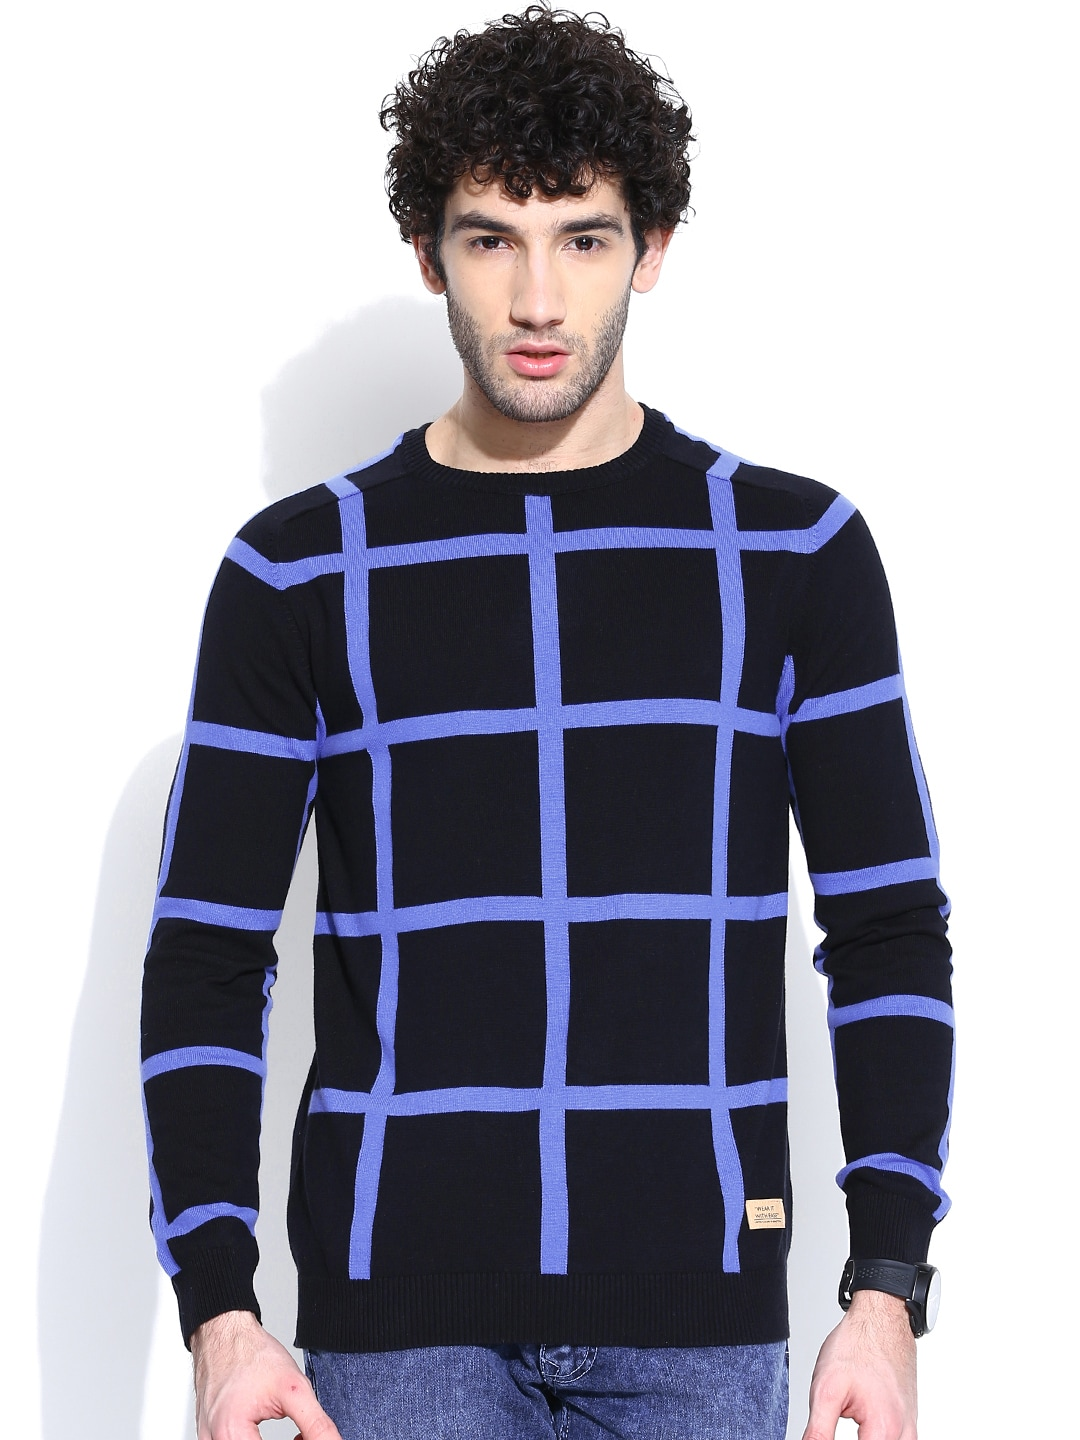 United Colors of Benetton Black Checked Sweater